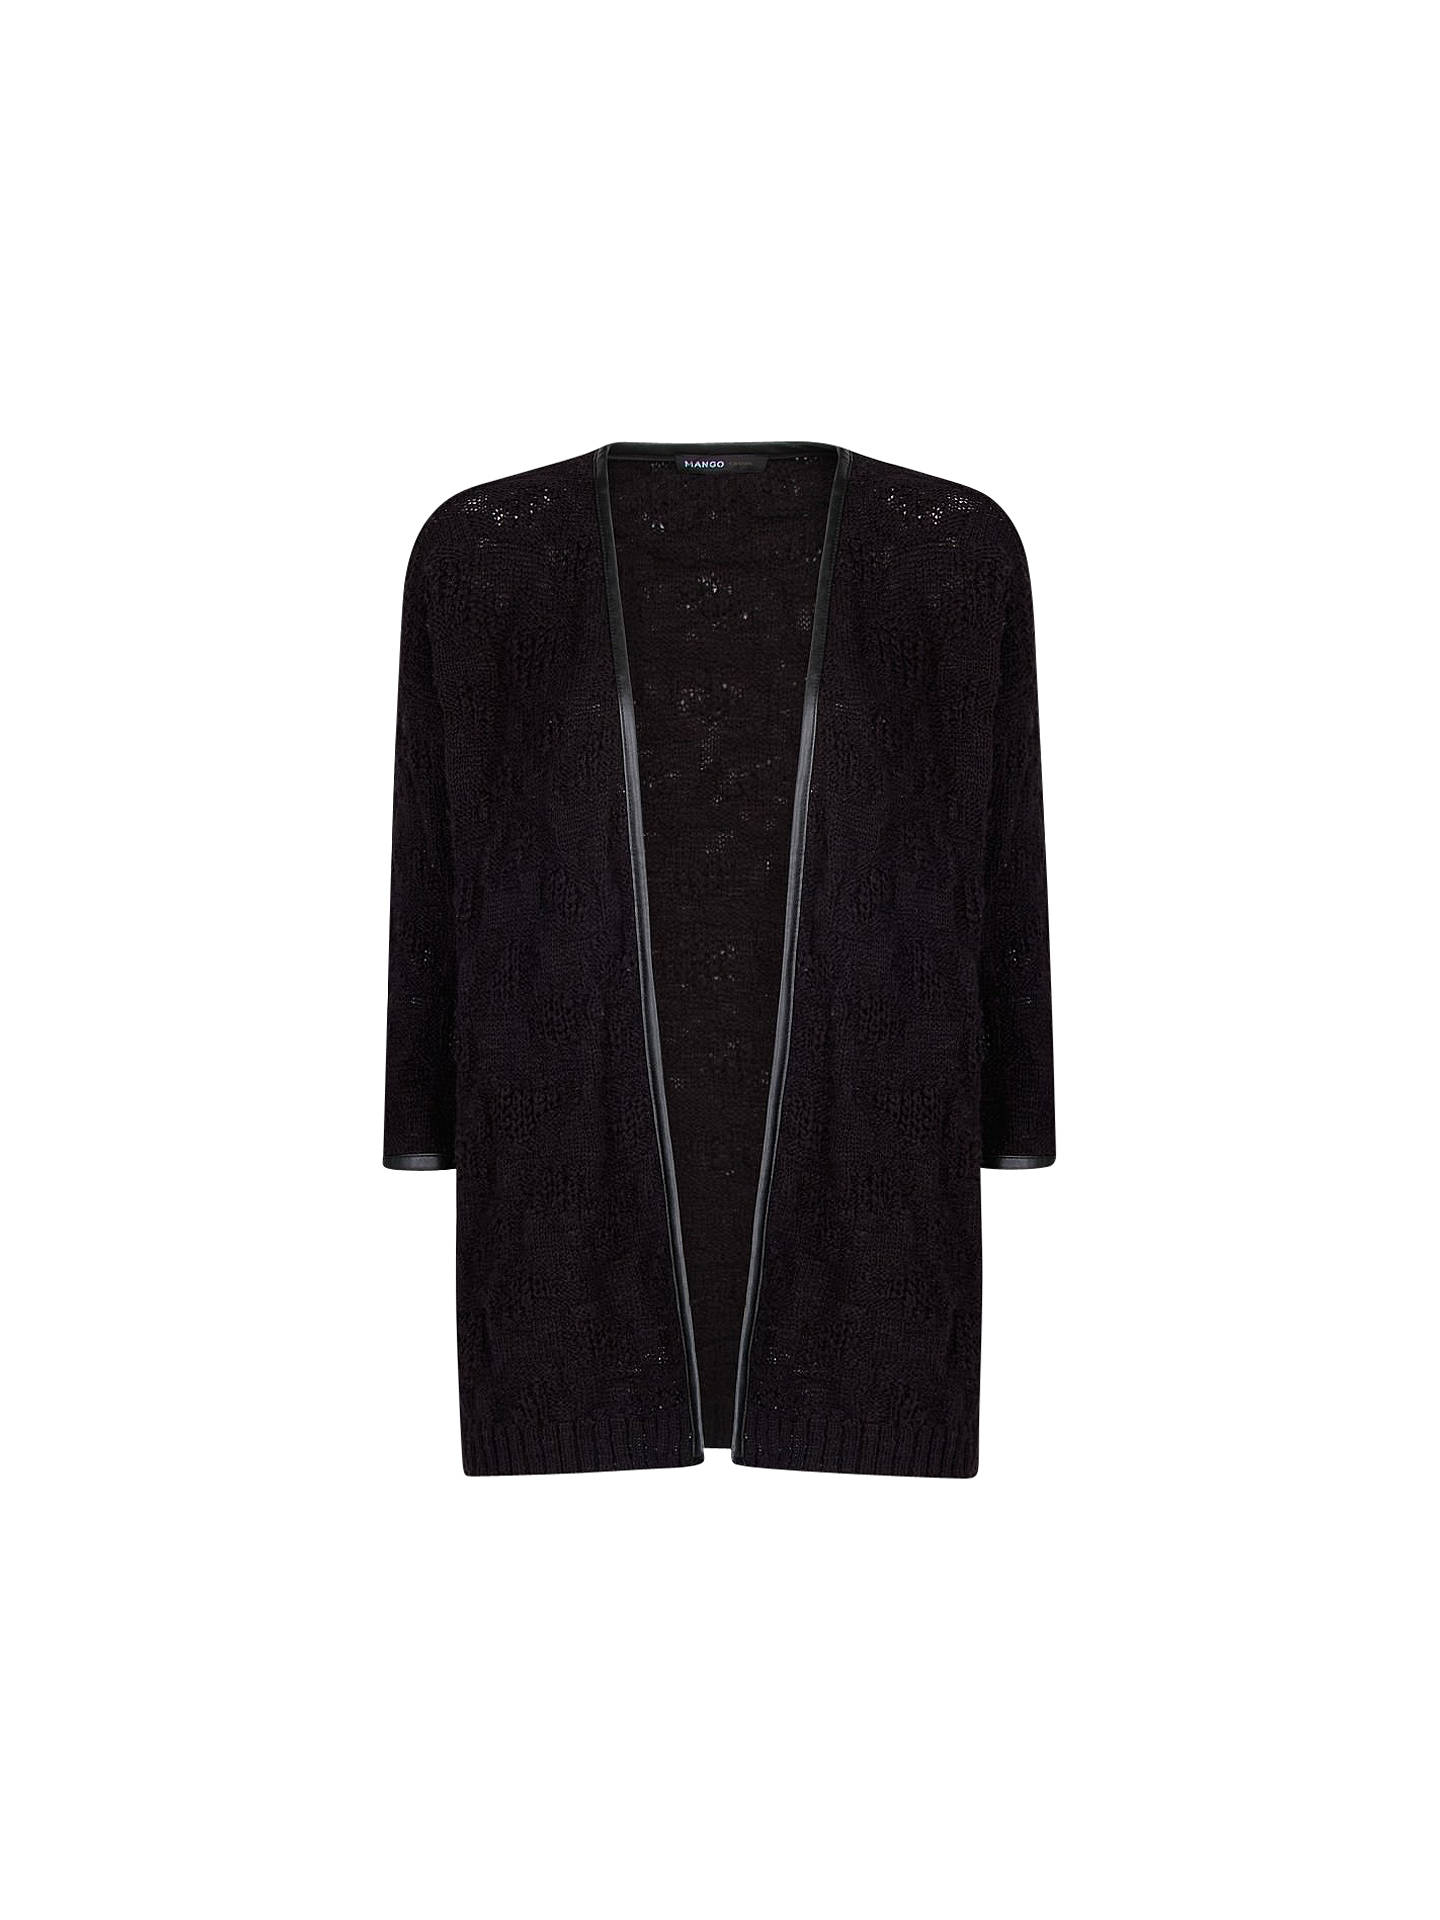 d79ef5def Mango Faux Leather Trim Cardigan at John Lewis   Partners